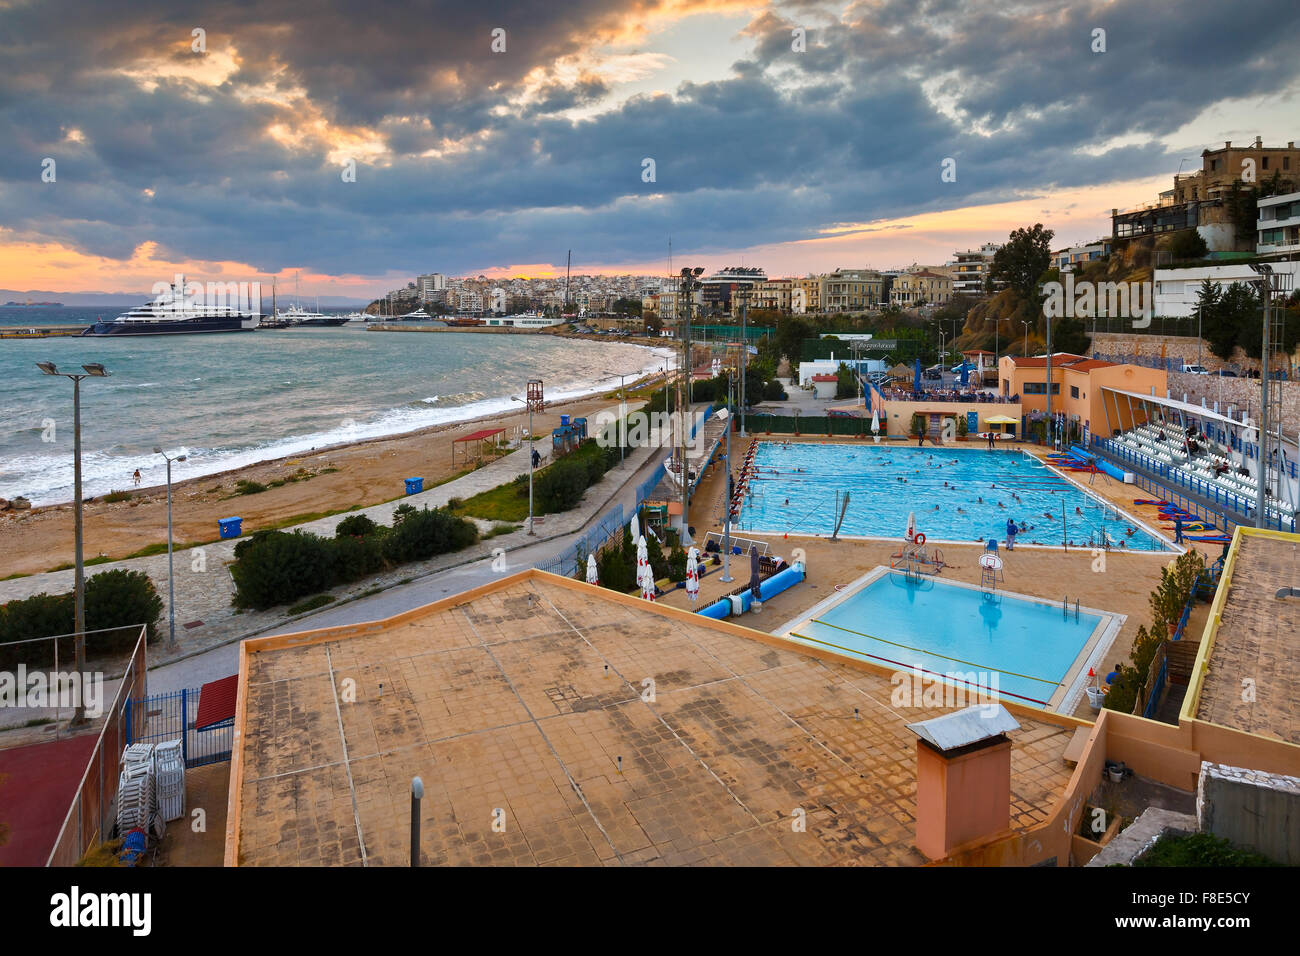 View Of The Municipal Swimming Pool In Piraeus And Mouth Of Zea Stock Photo Royalty Free Image